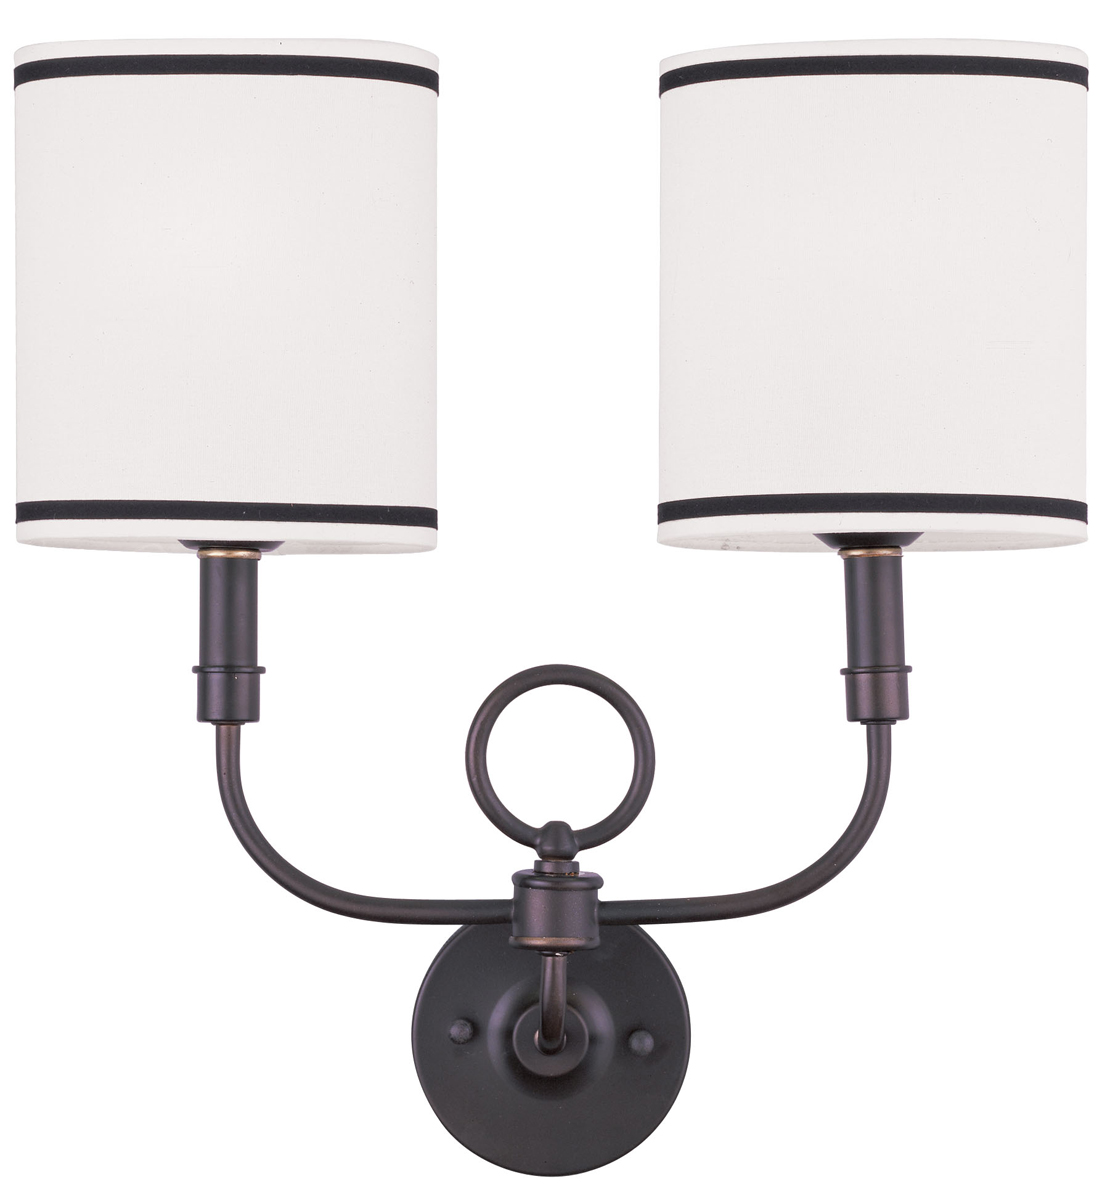 Livex Lighting 9122 Wall Sconces 2 Light ADA Compliant